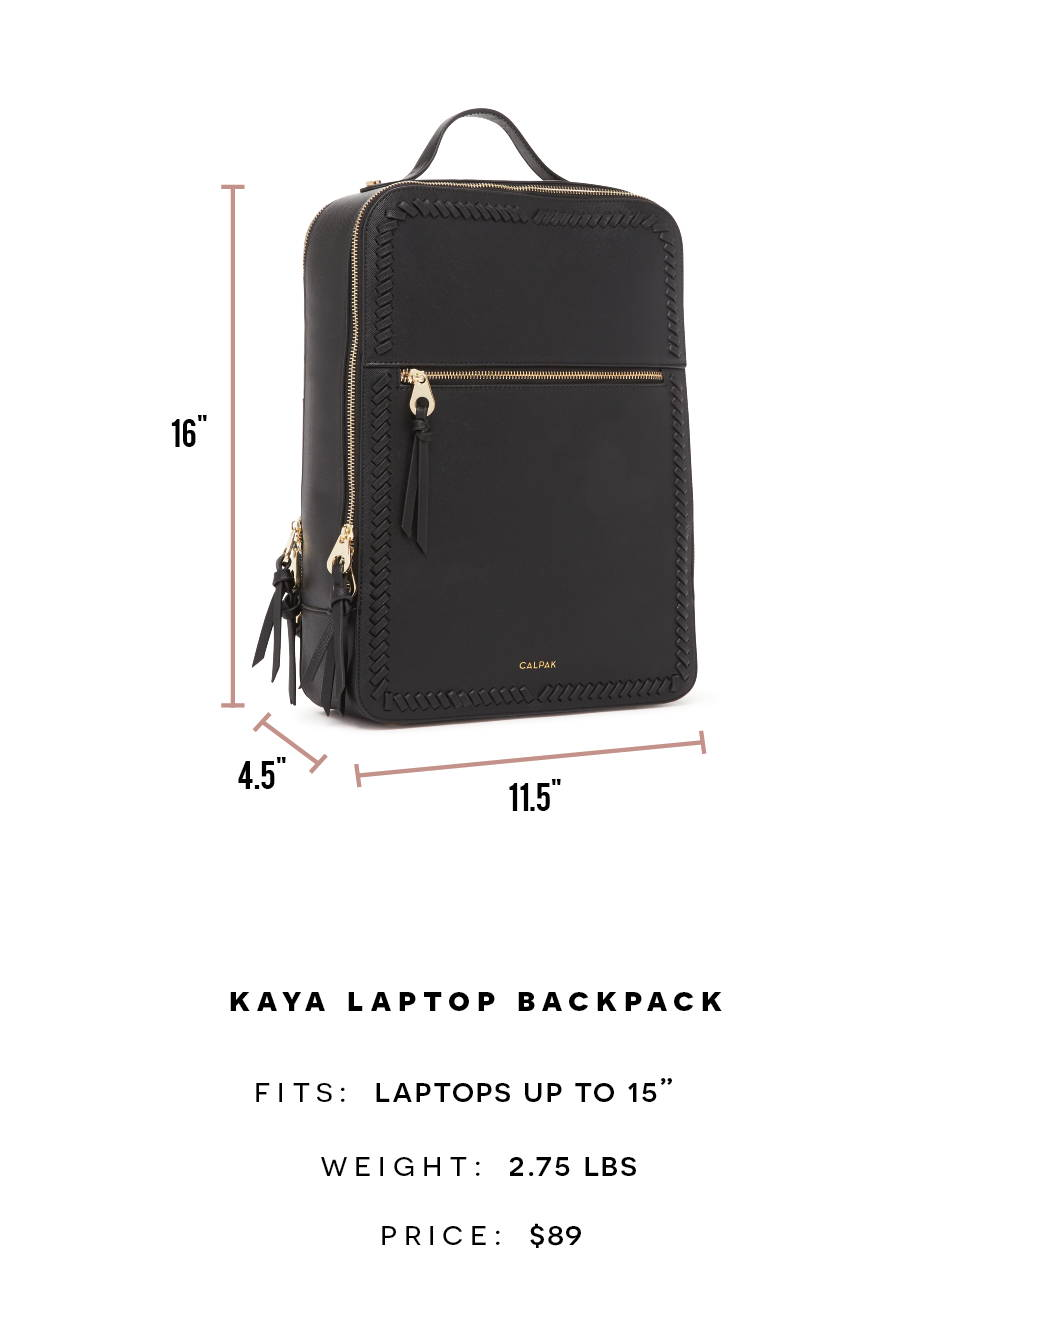 KAYA LAPTOP BACKPACK